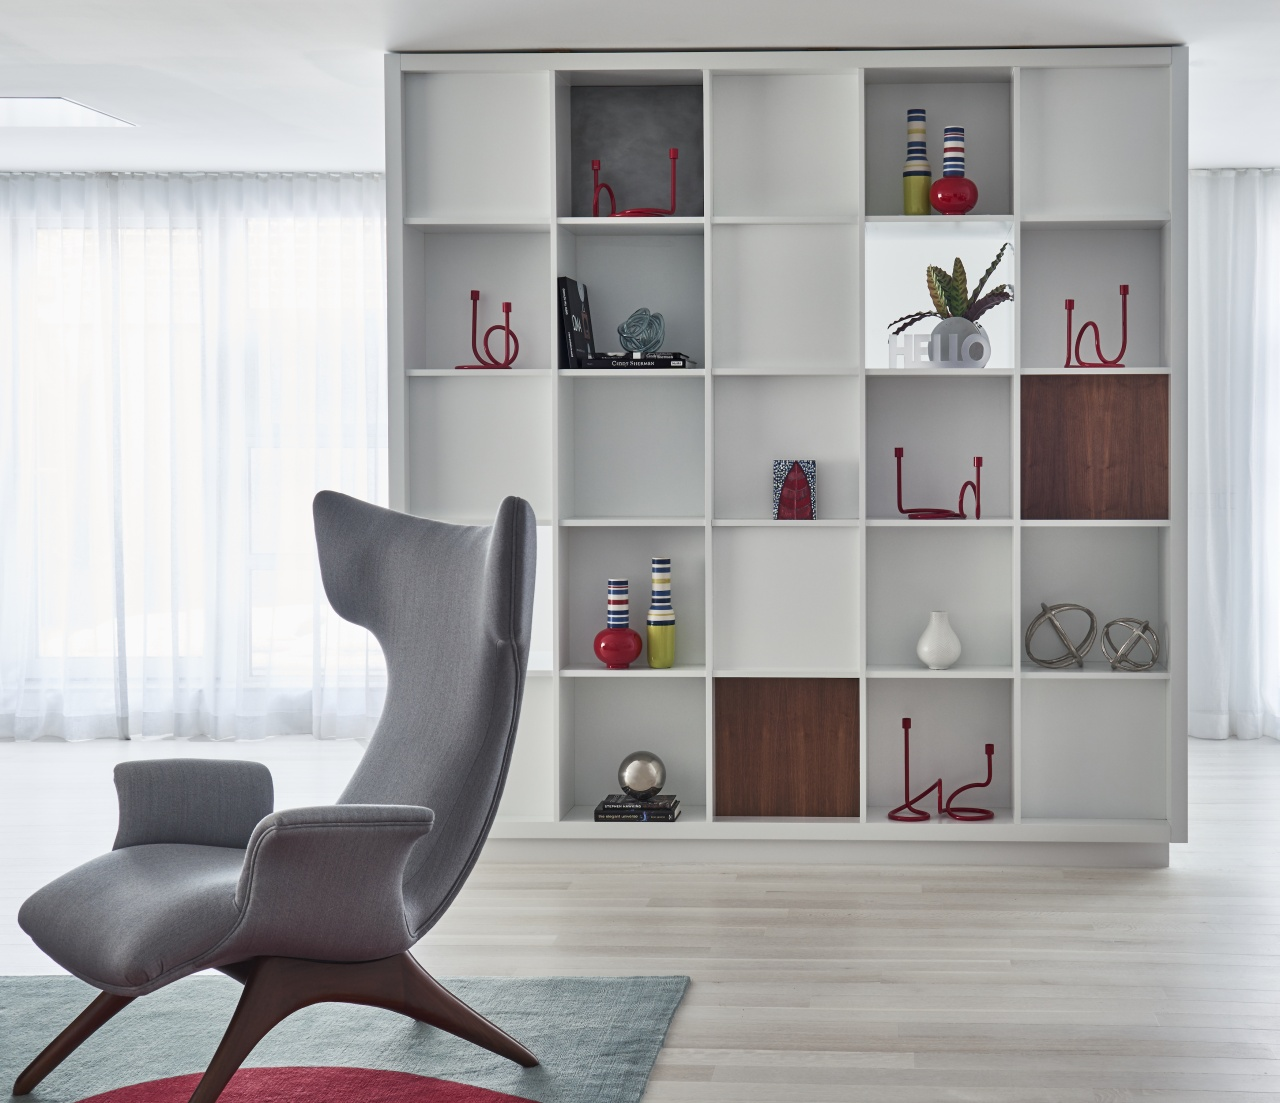 This custom bookcase/room divider was designed based on